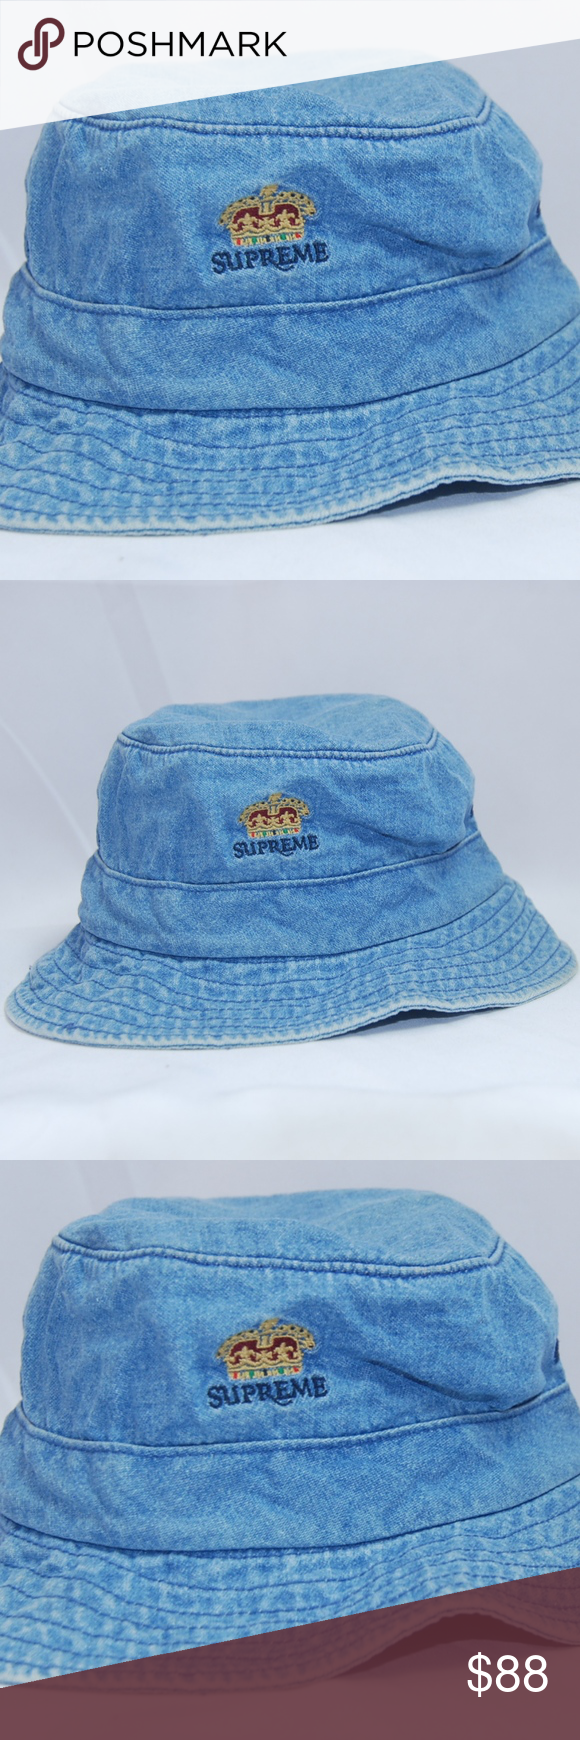 NWT Authentic Supreme Denim Bucket Hat Sz M L NWT Authentic Supreme Denim  Bucket Hat 6a4c2d622ae